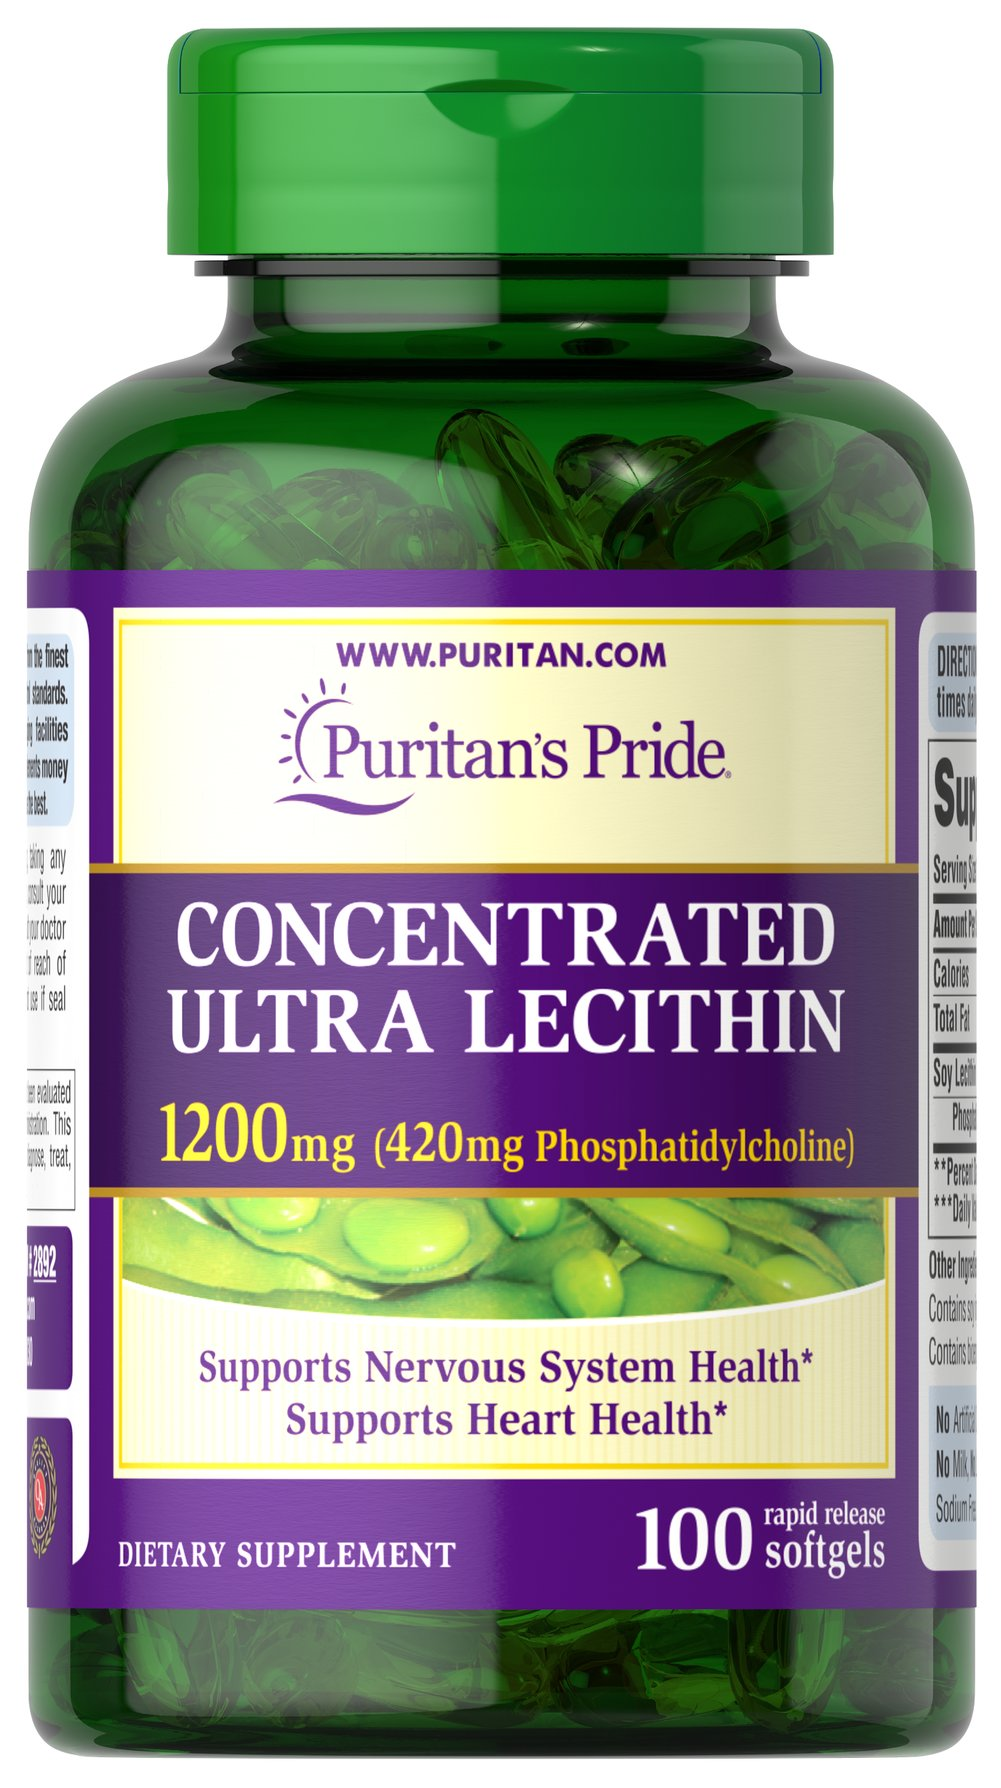 Concentrated Ultra Lecithin 1200 mg  100 Rapid Release Softgels 1200 mg $14.99